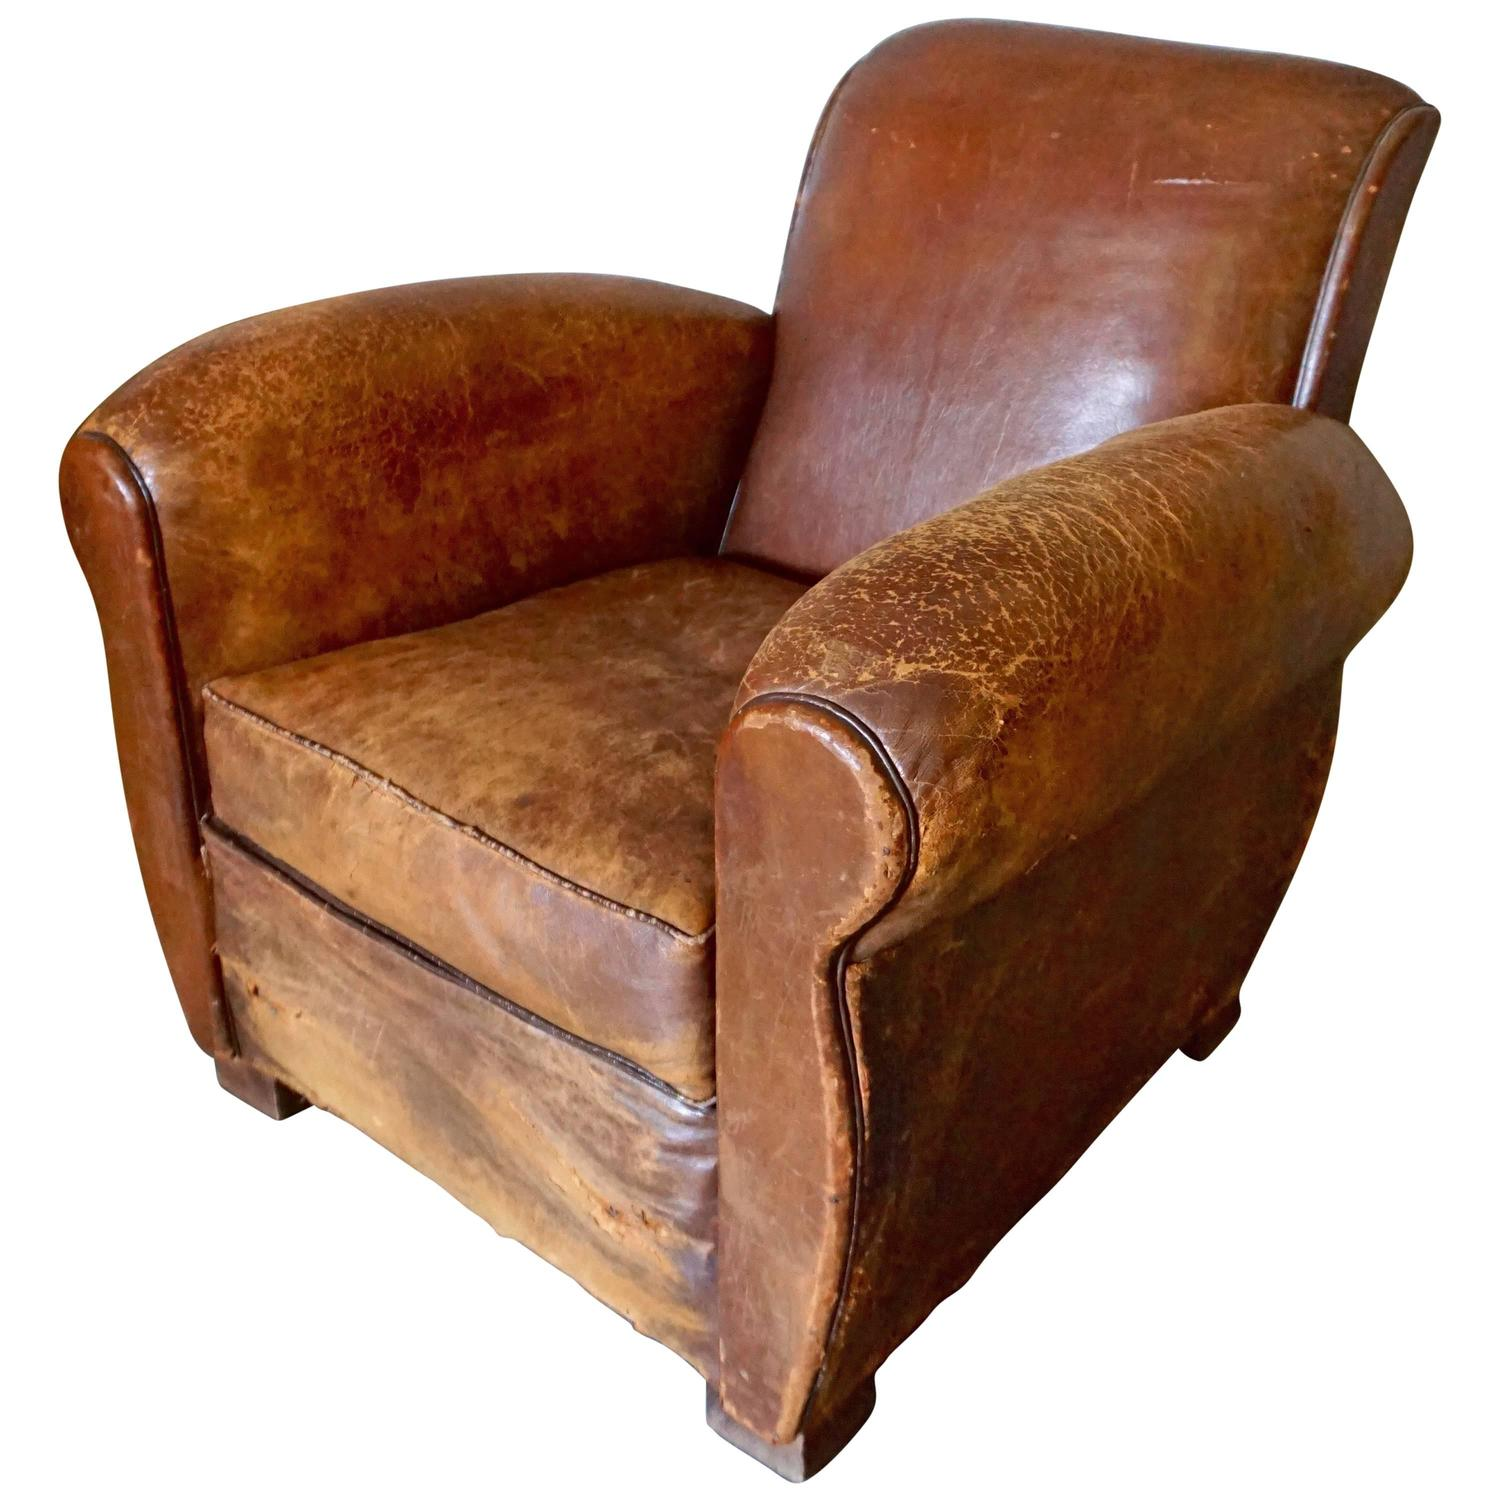 Leather Club Chair Distressed Art Deco French Cognac Leather Club Chair